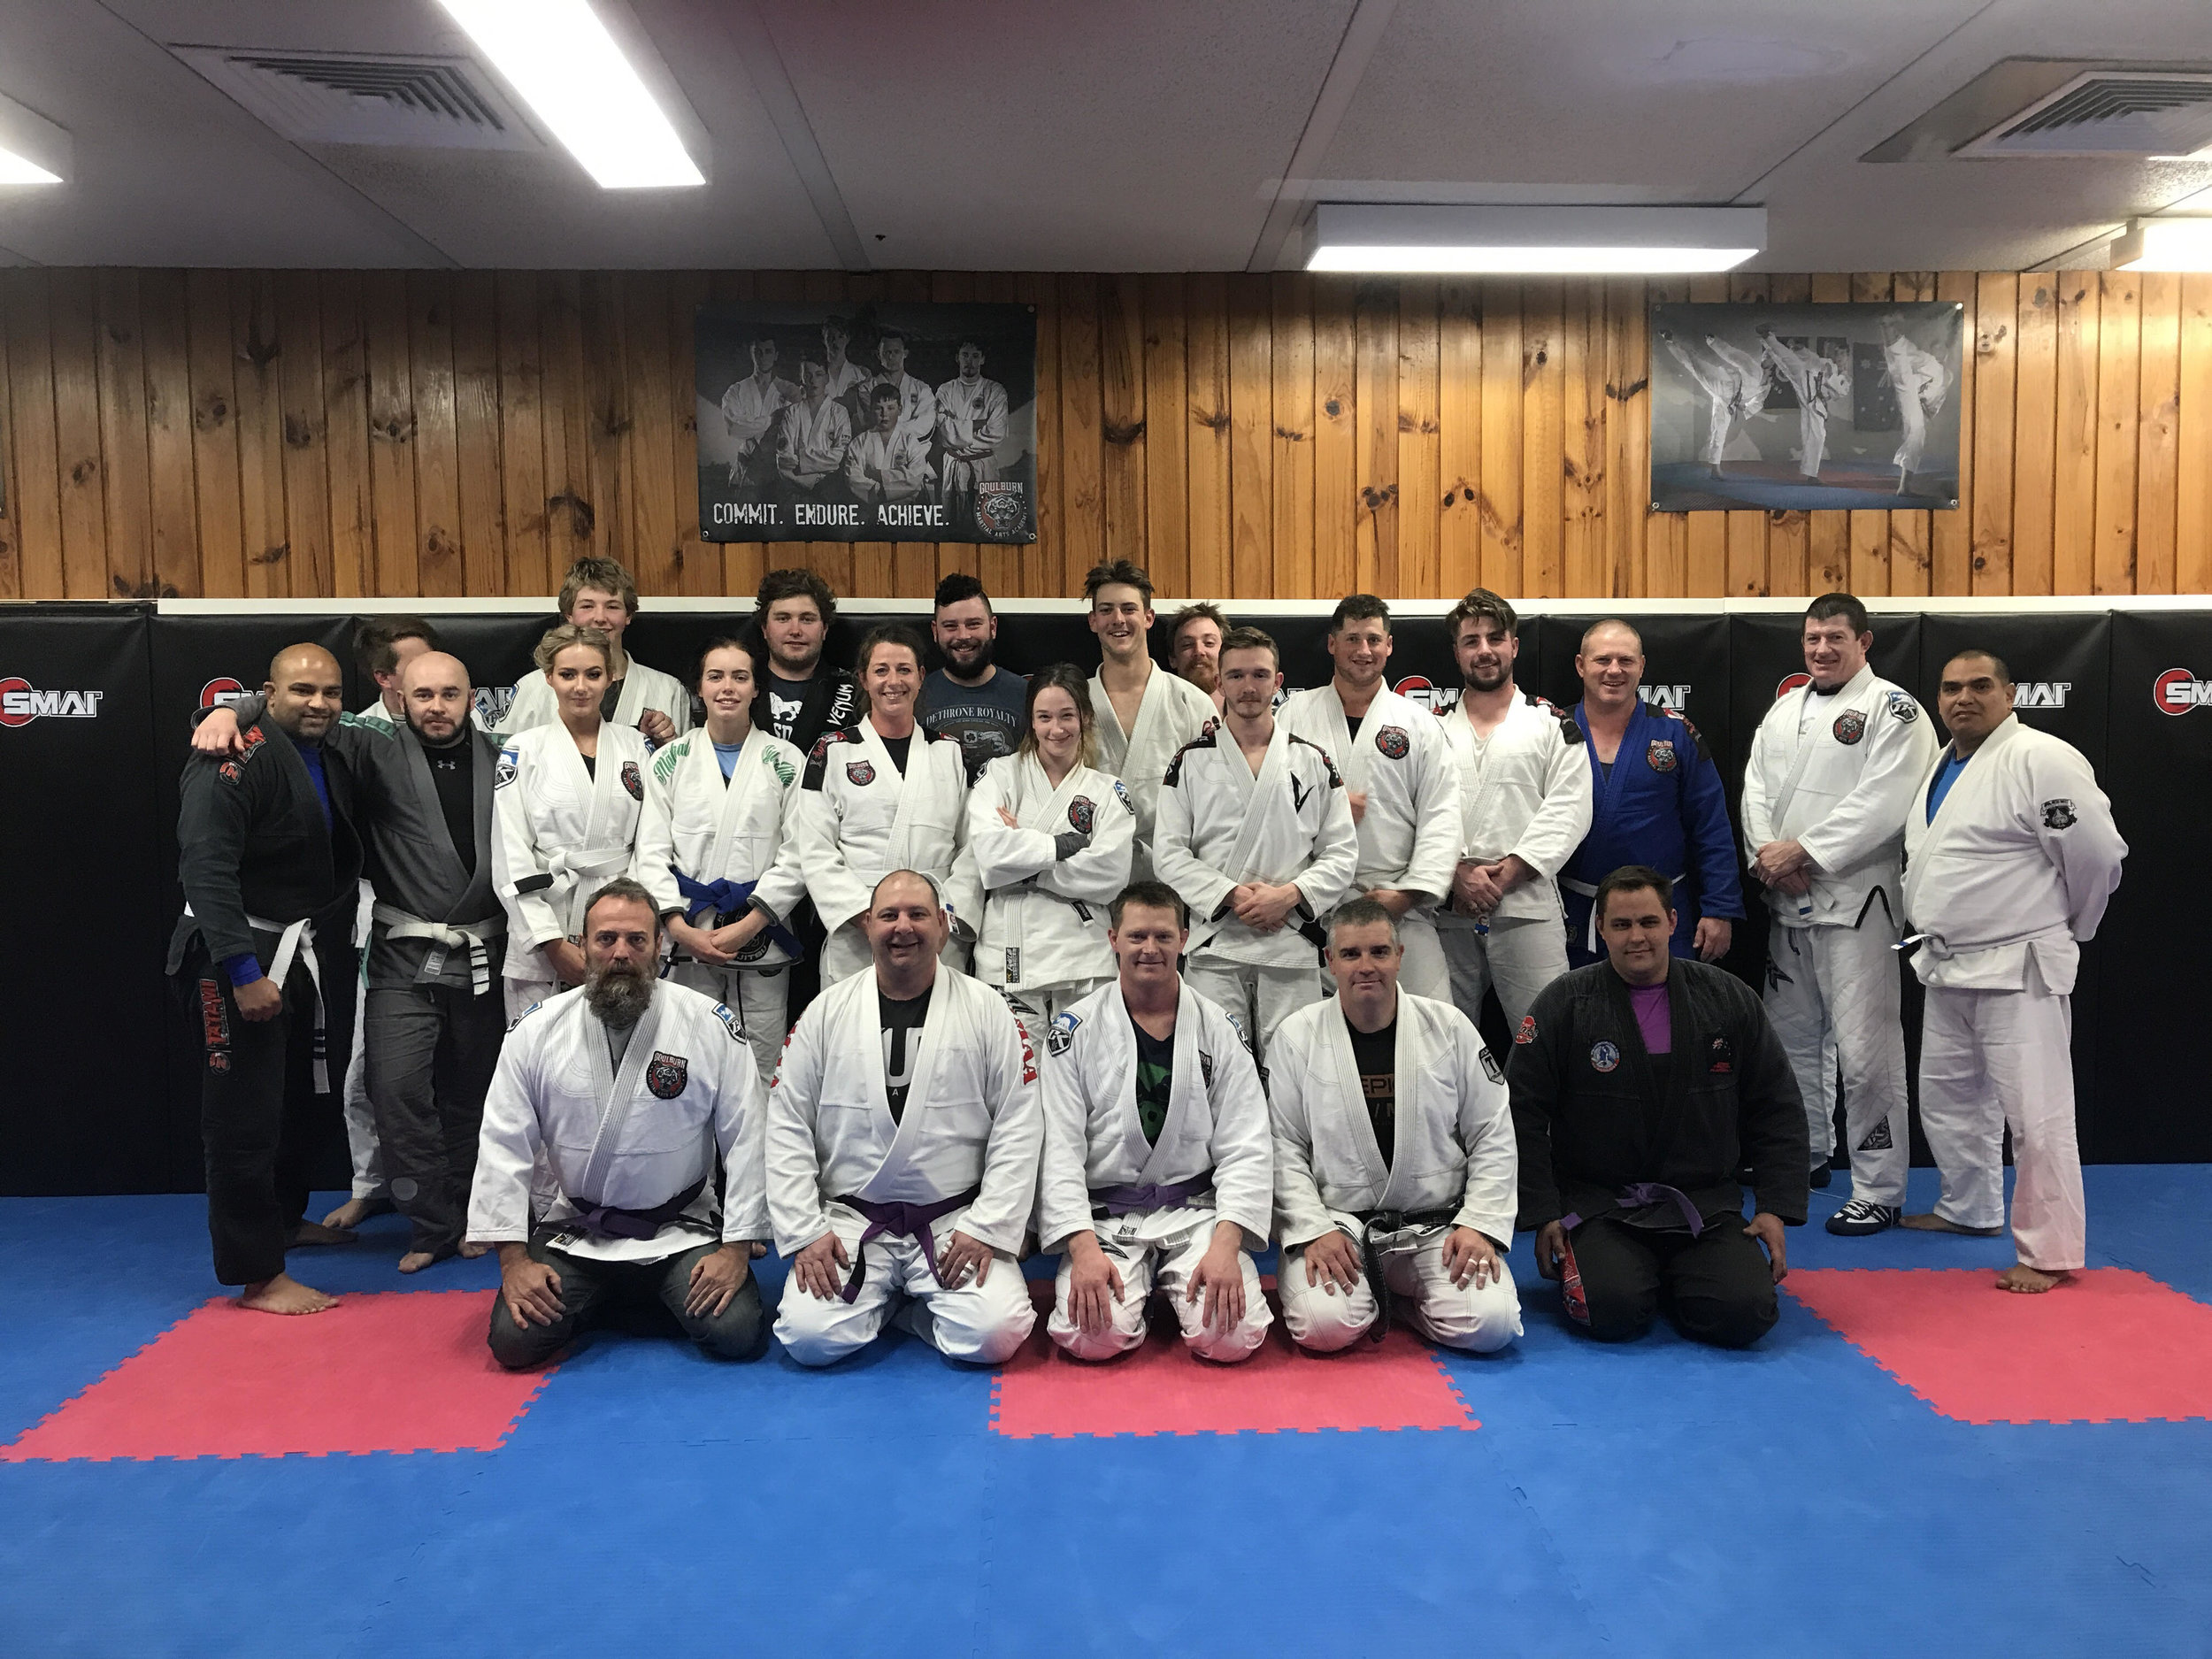 We were lucky enough to have our Balck Belt Coach Danny weir come and share the mats with us again as well as Machado Team mate Scott Cunningham. While over here Danny Wrapped a flash new purple belt on our OG Floop. I want to congratulate you mate many years and hard work have gone into this new rank as well as a fresh new purple eye.  Well done!